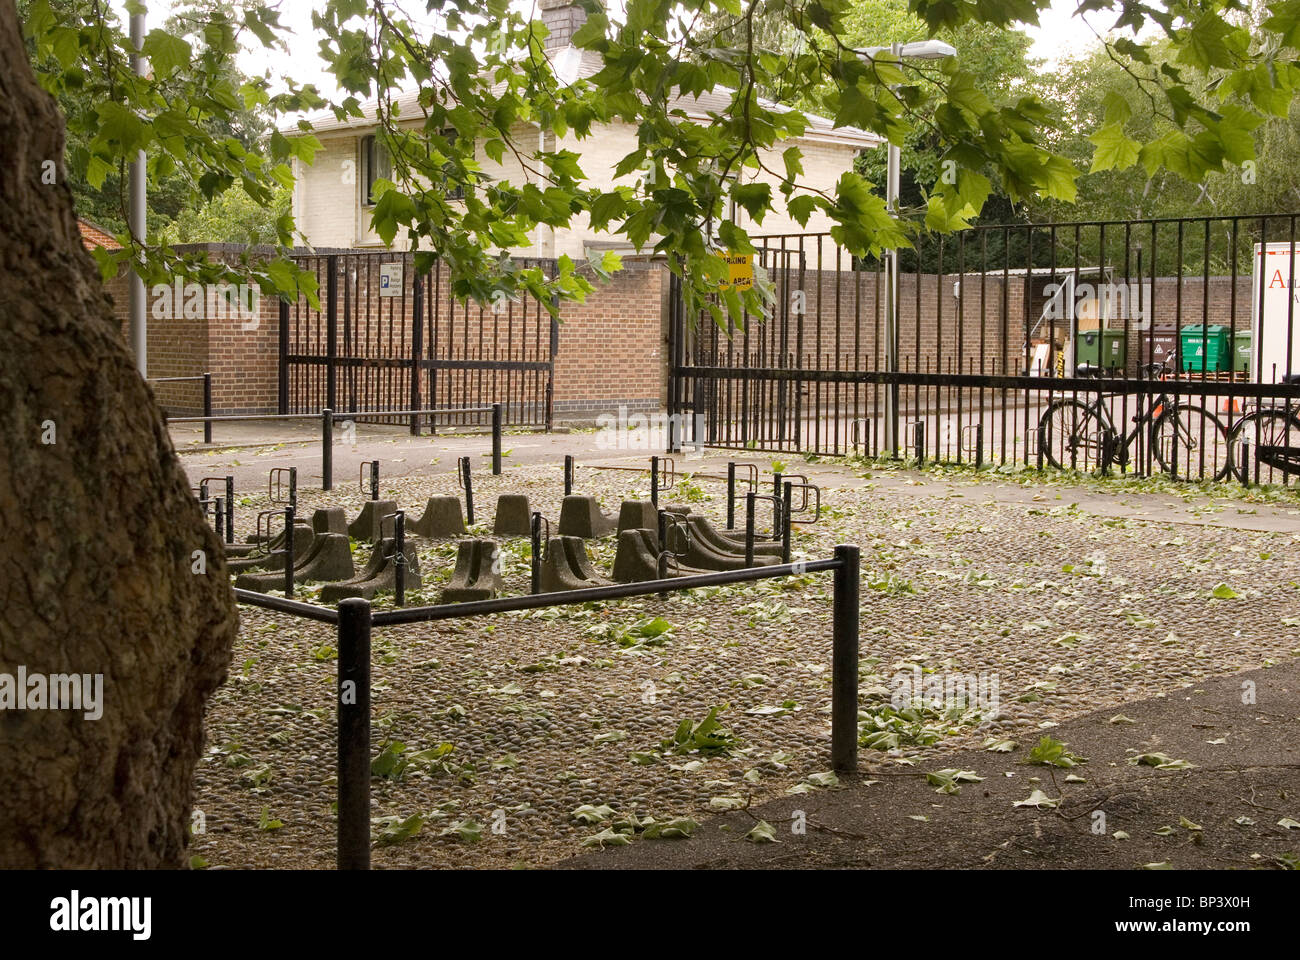 Unpopular insecure cycle parking on the Sidgwick Site, University of Cambridge - Stock Image